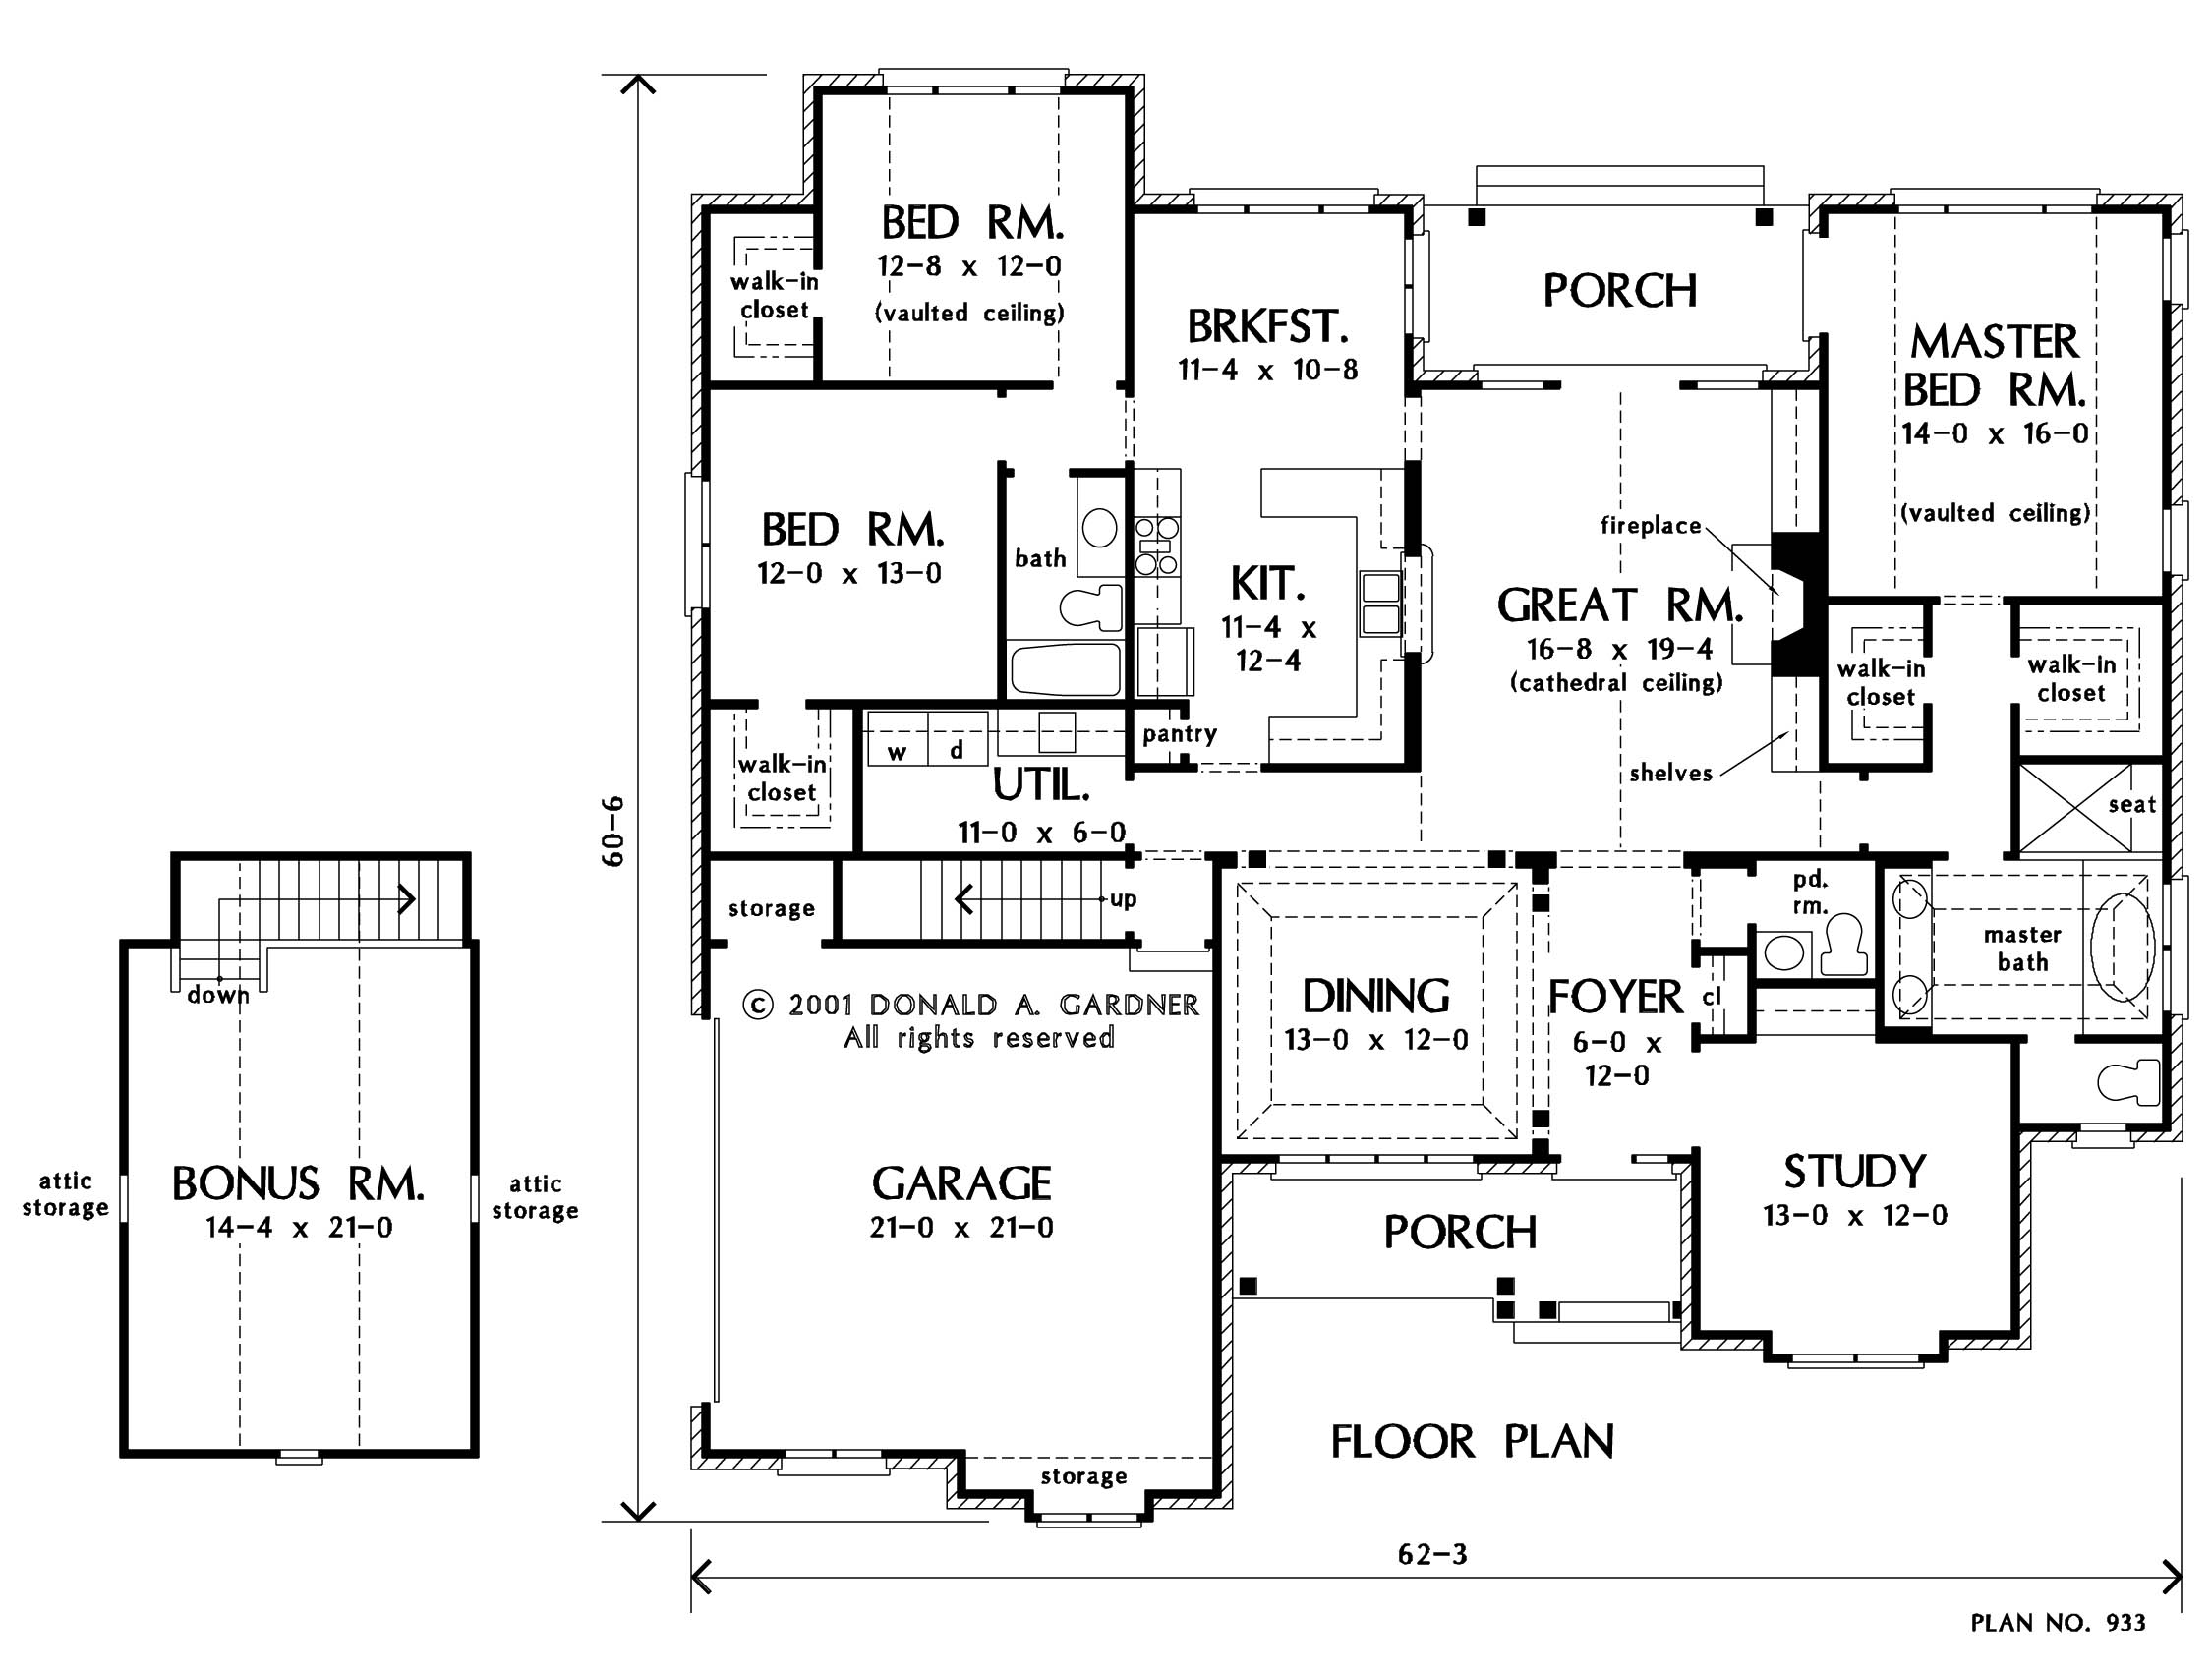 New construction yankton real living carolina property for New home construction floor plans